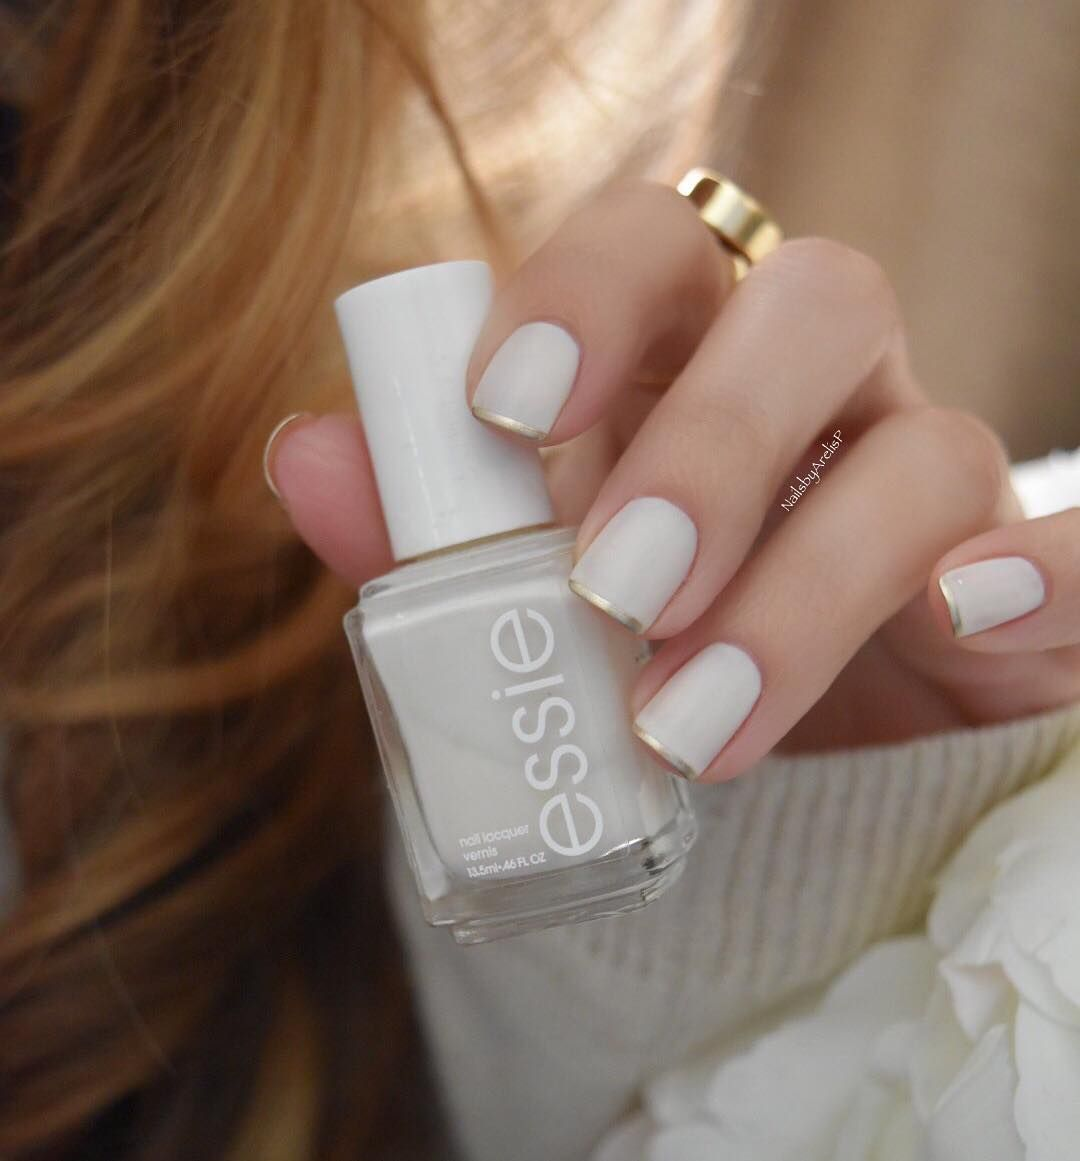 On the nails @essiepolish Marshmallow (3 thin coats) topped it with ...